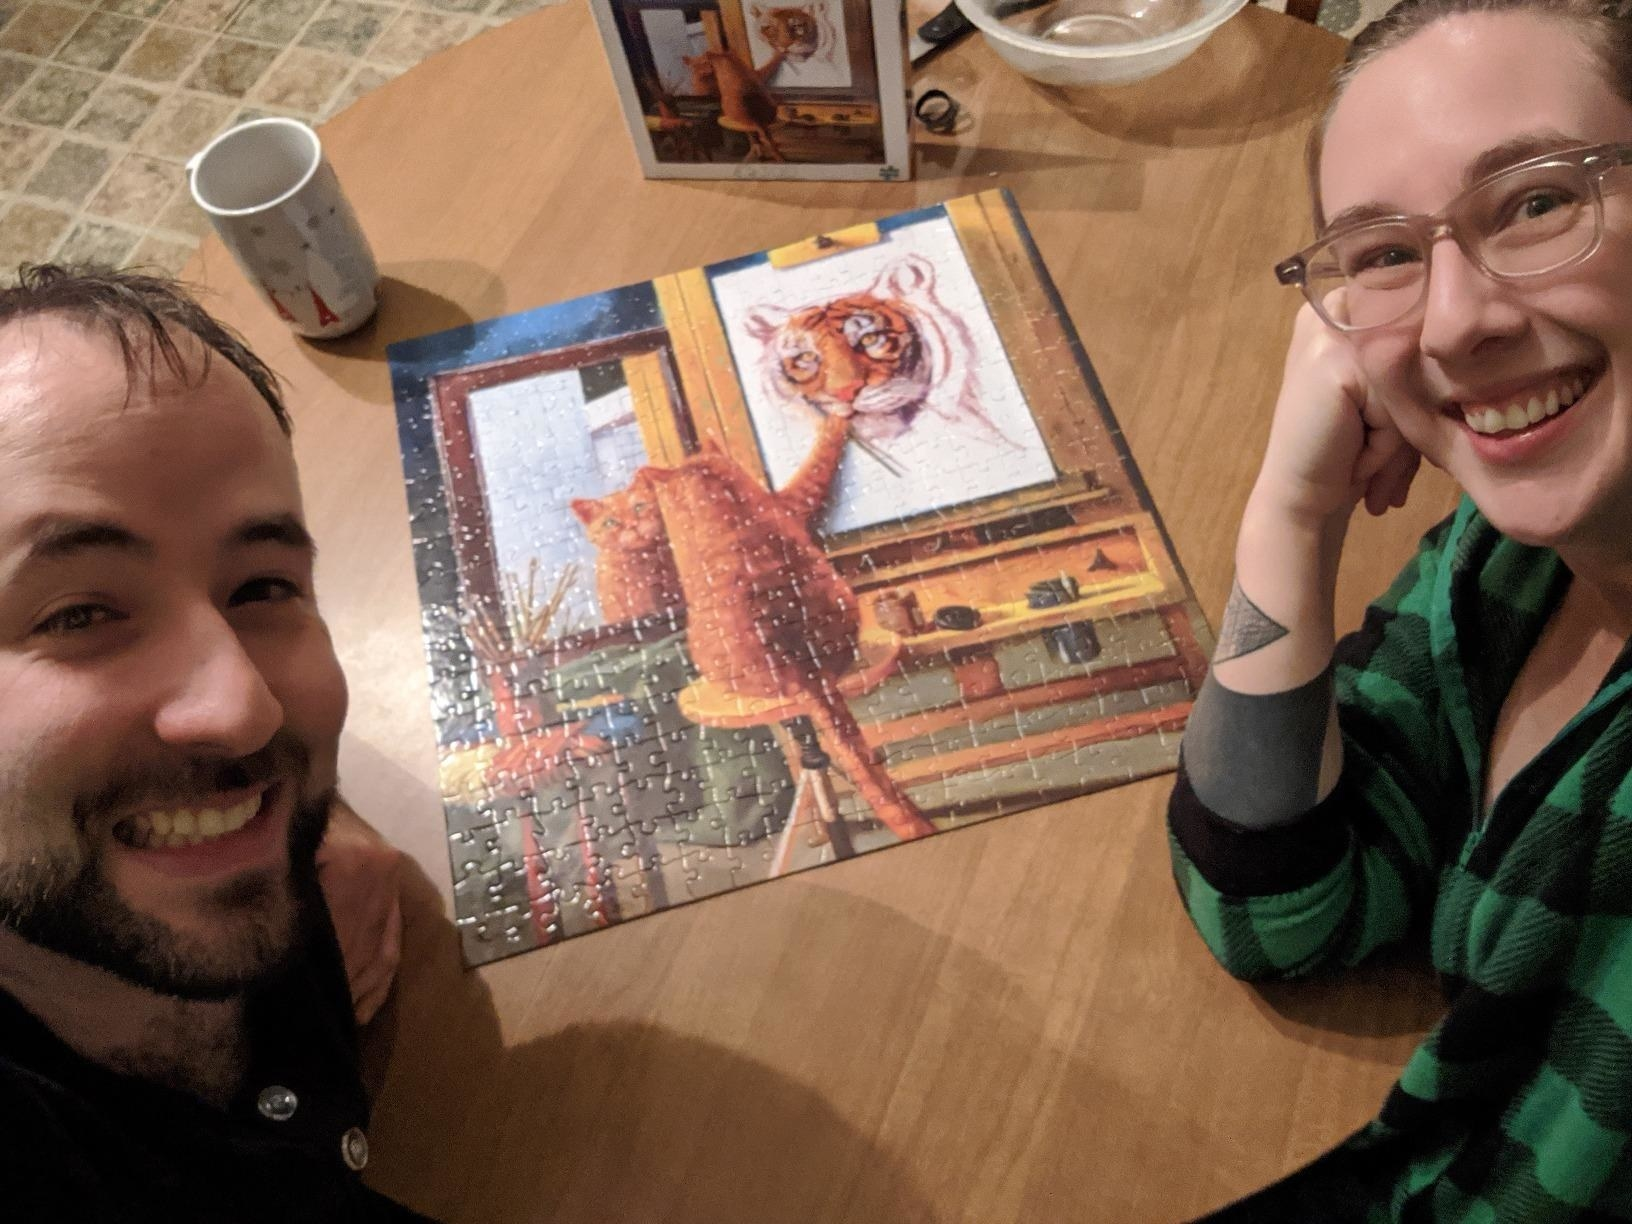 couple poses with finished puzzle that looks like Norman Rockwell's Triple Self-Portrait, except with a cat panting itself as a tiger